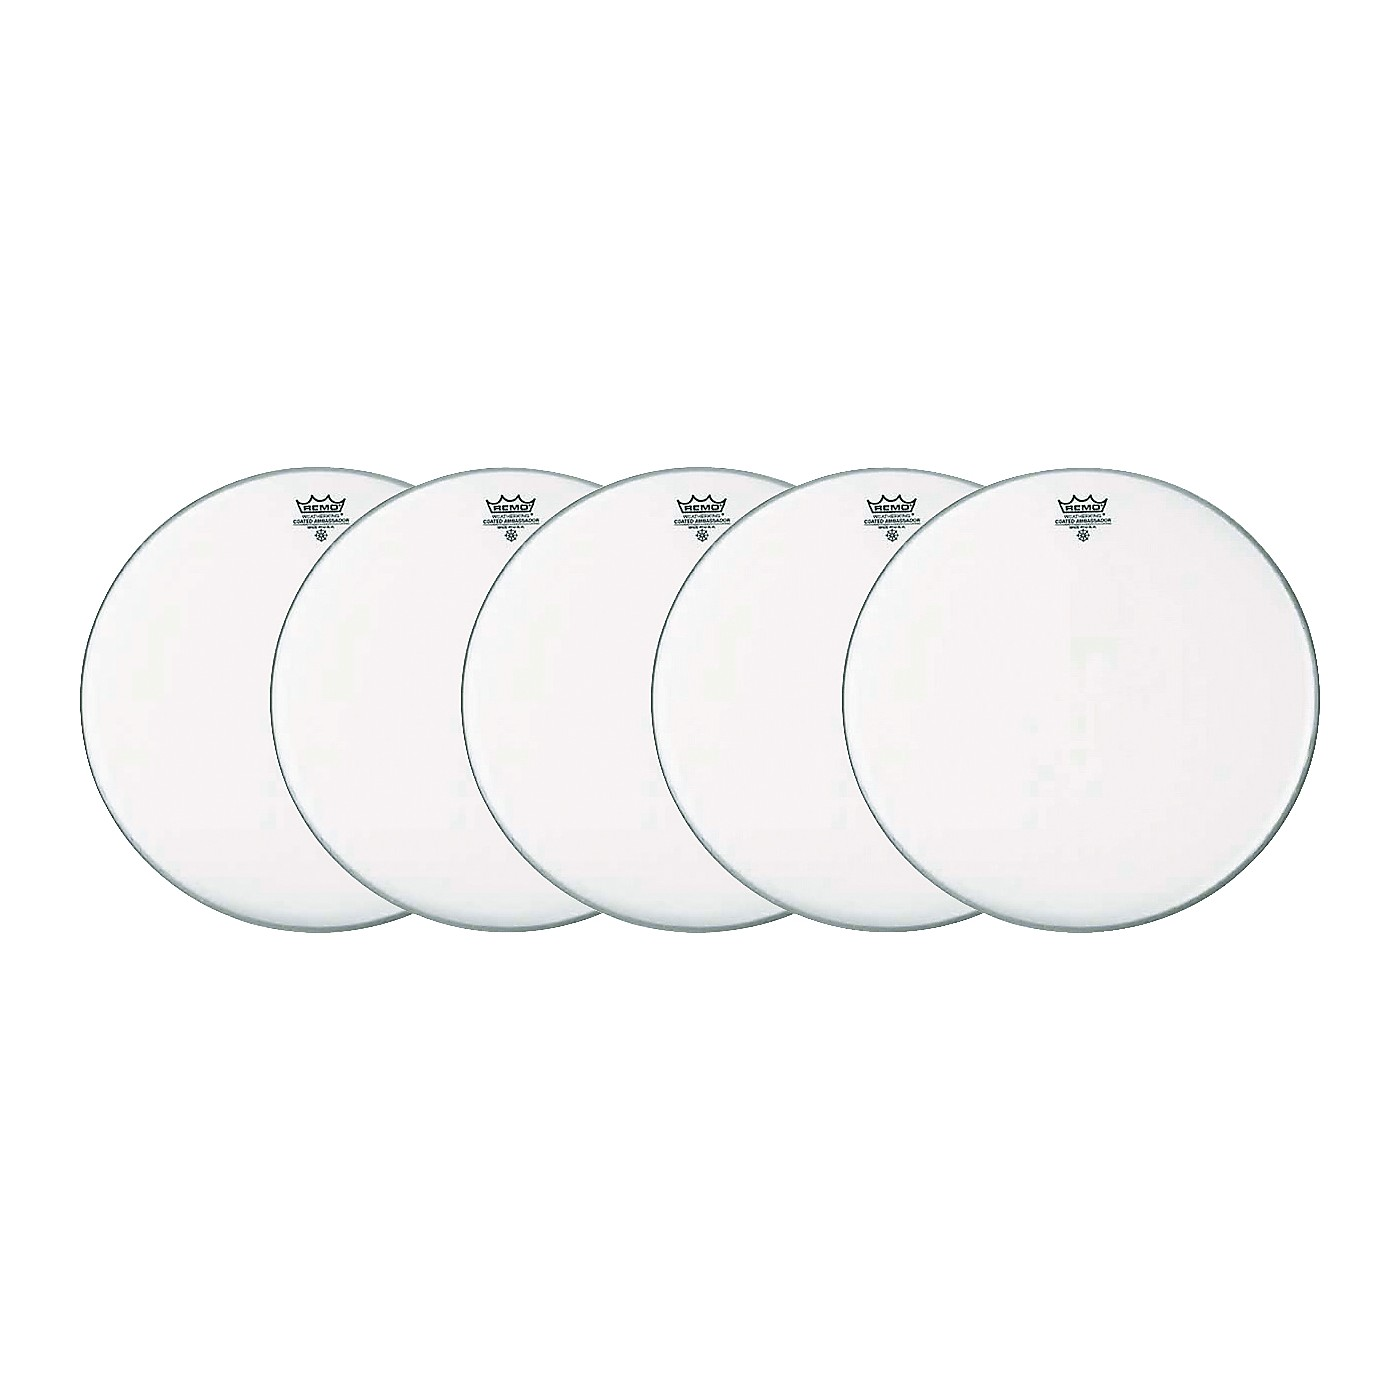 Remo Ambassador Coated Snare Head 14 Inch 5-Pack thumbnail